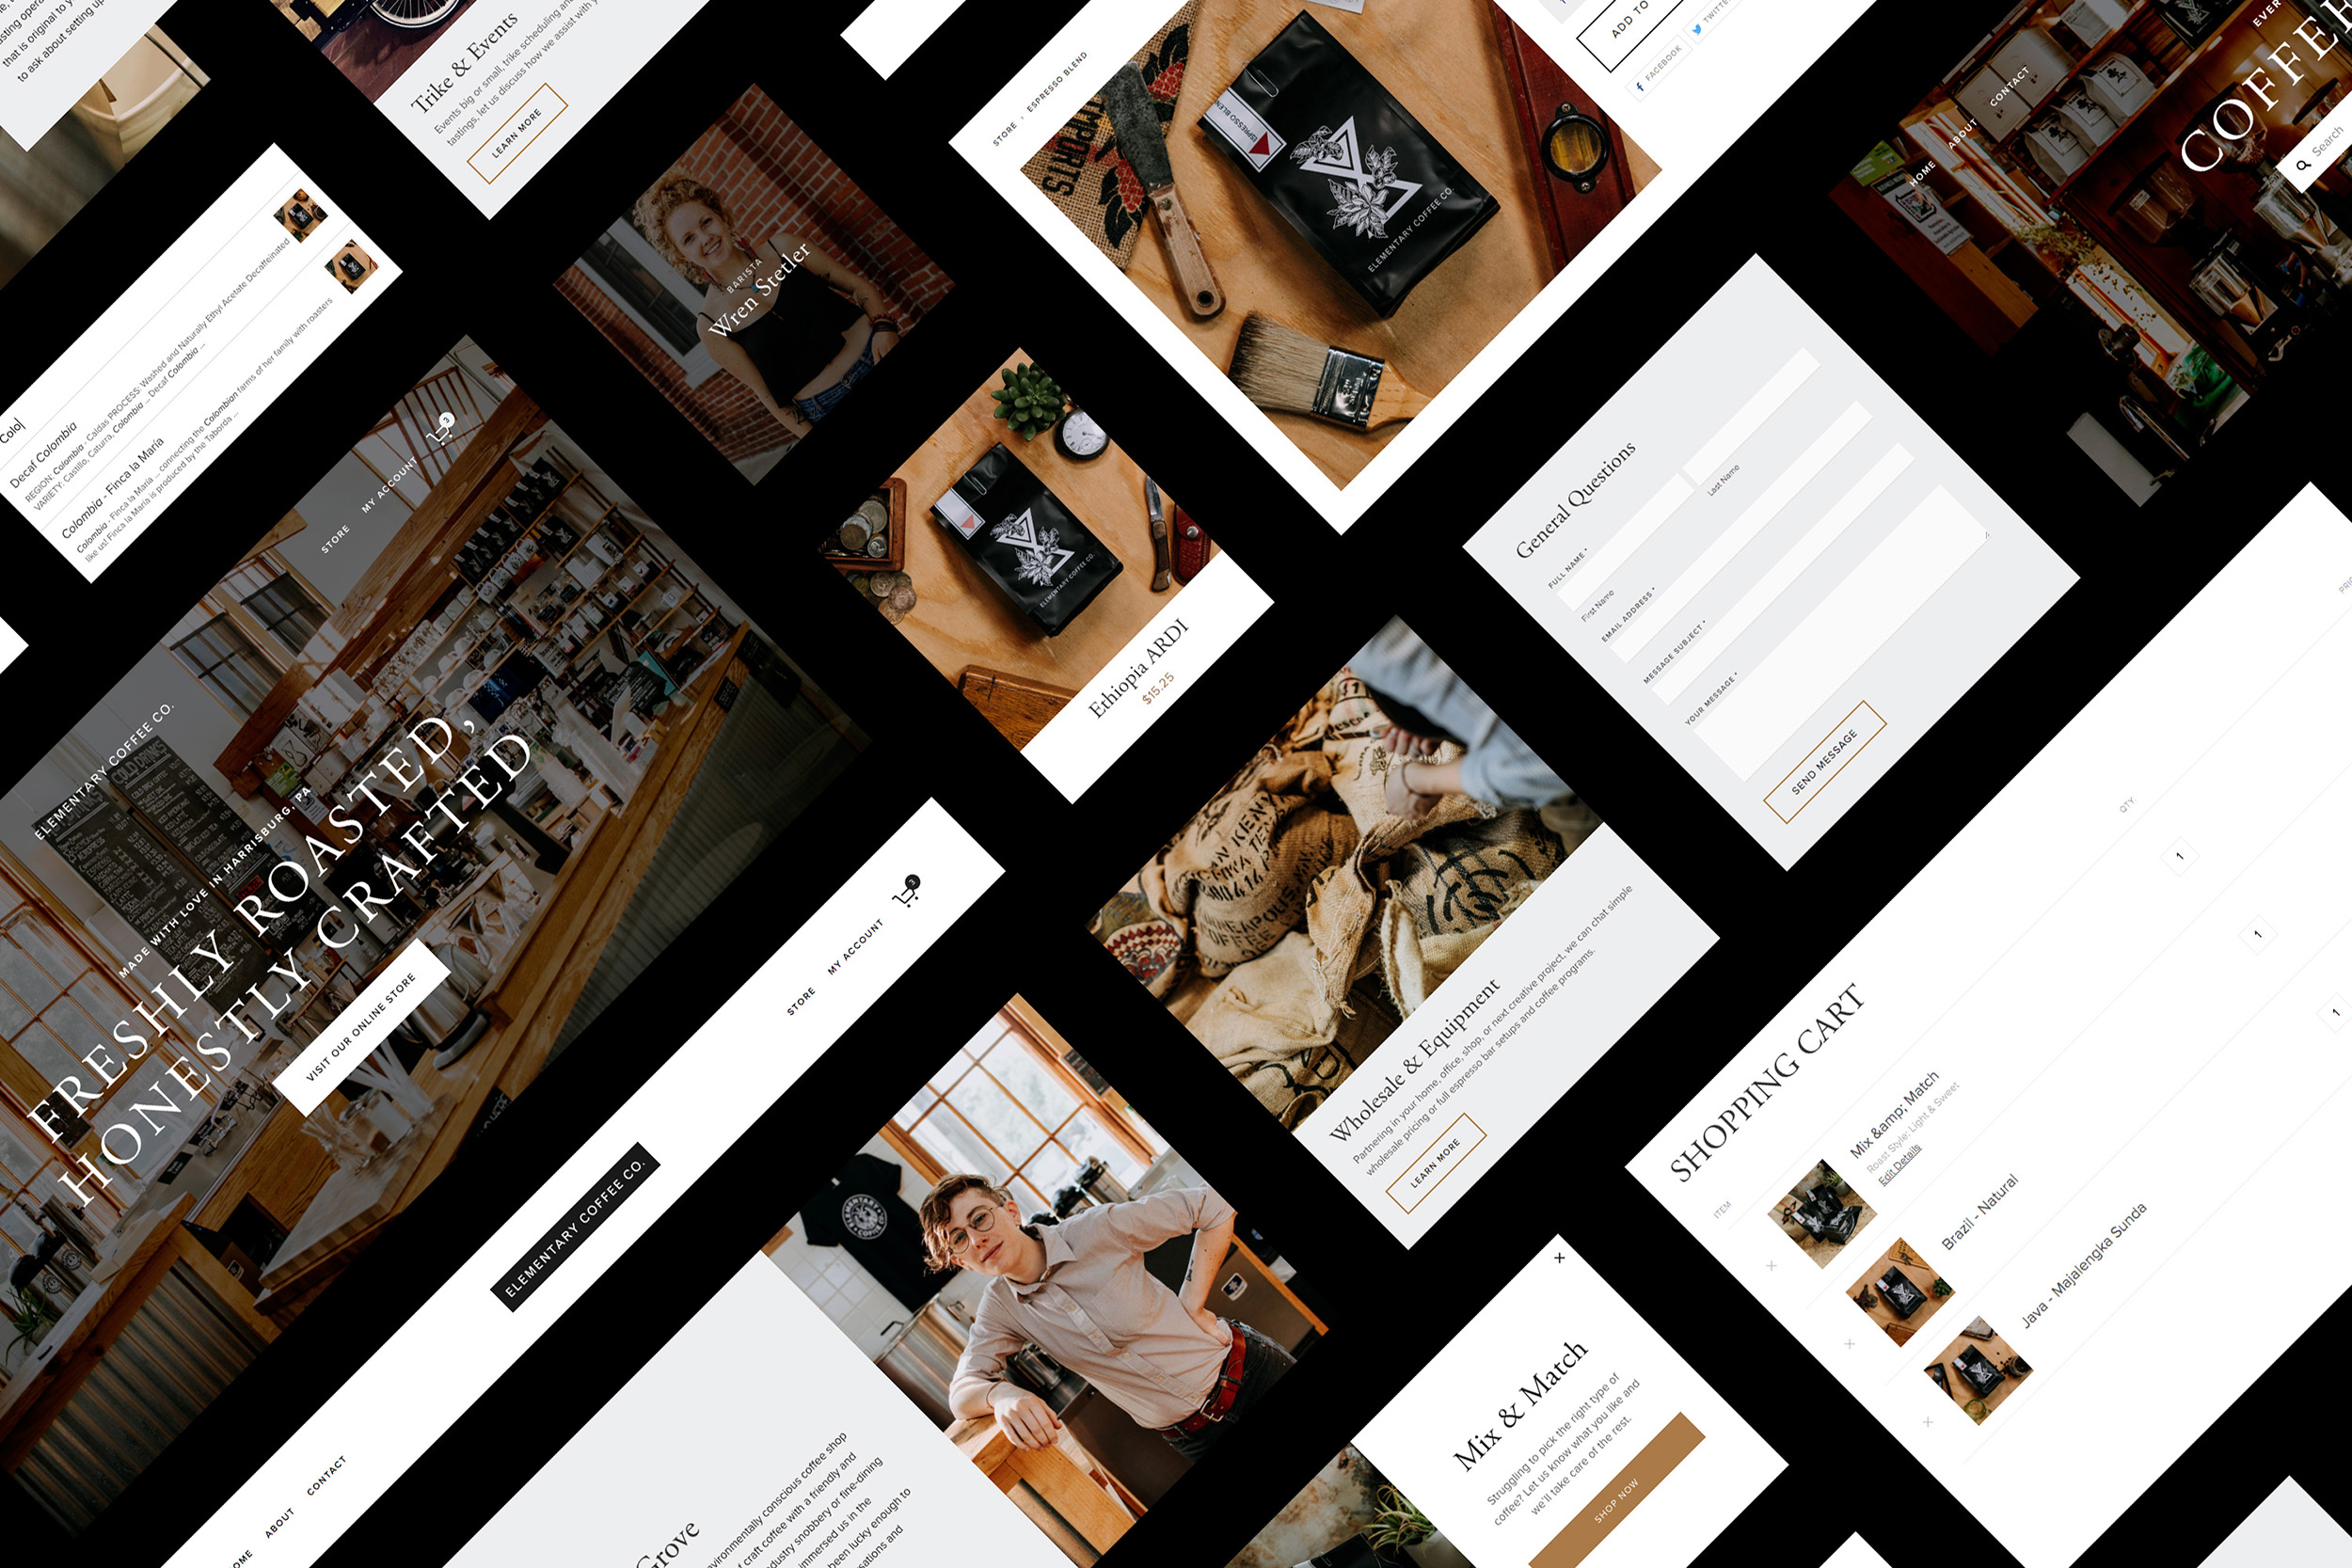 Squarespace Content Blocks for a Coffee Shop Website